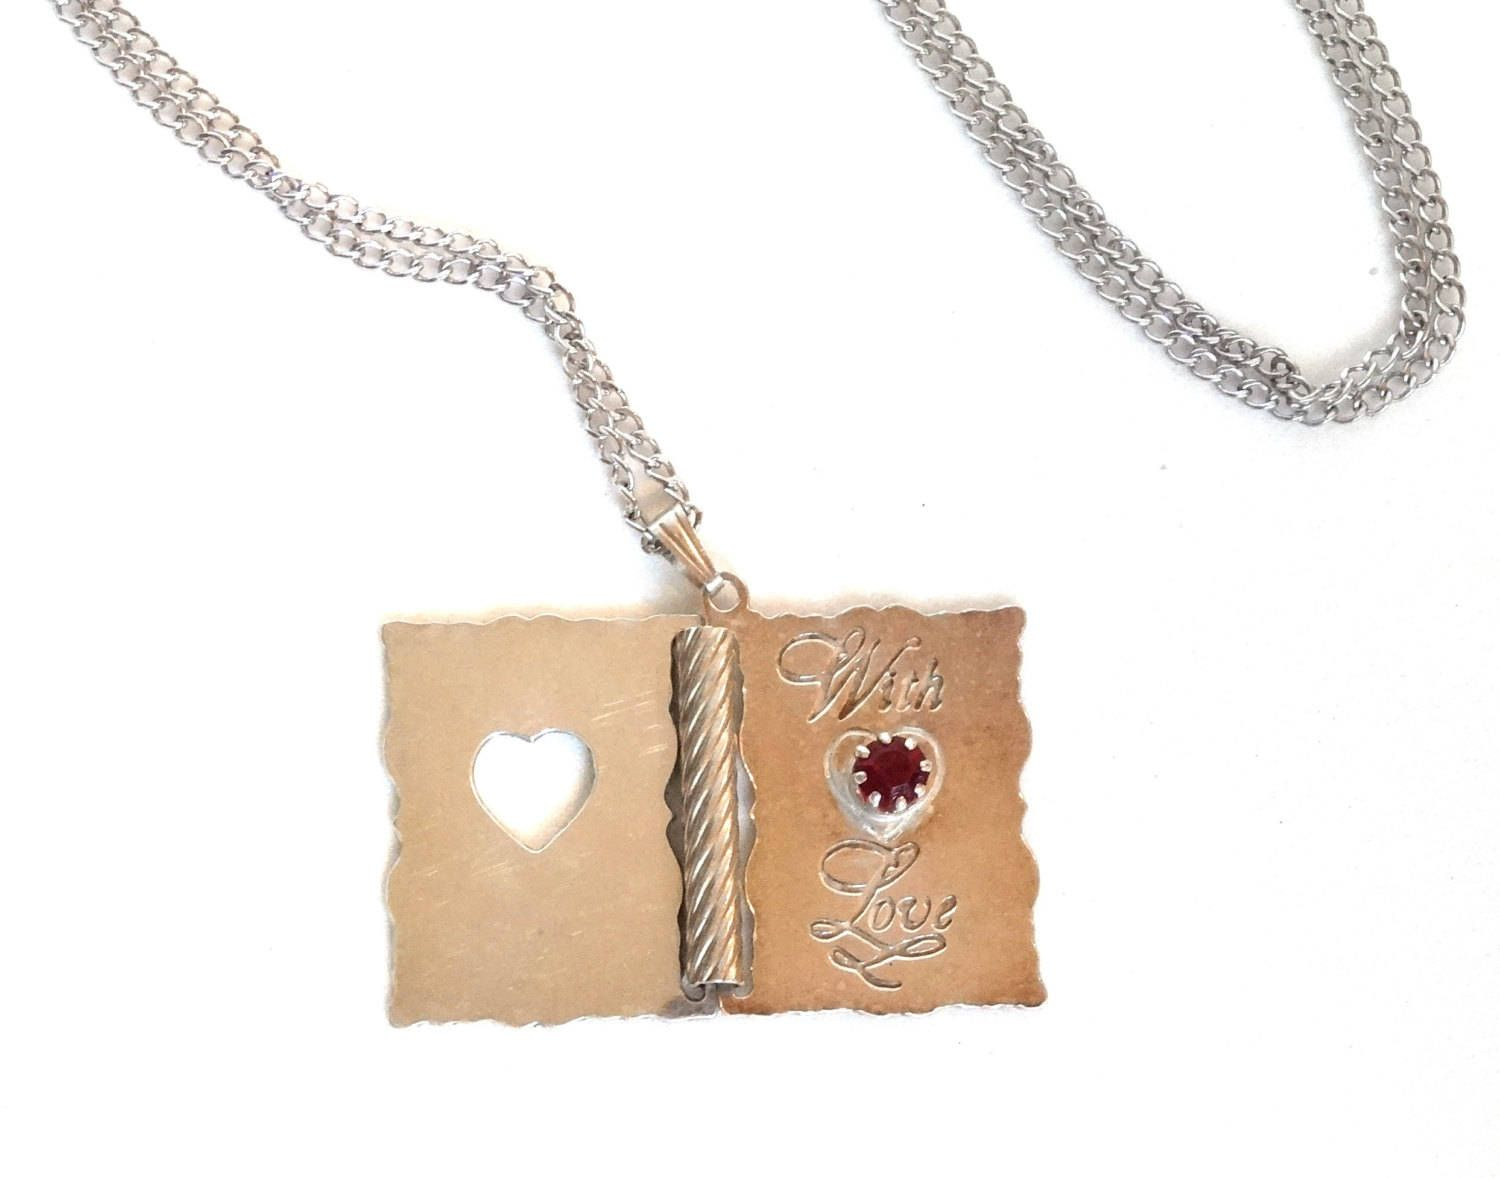 Vintage sterling silver book pendant necklace ruby red stone